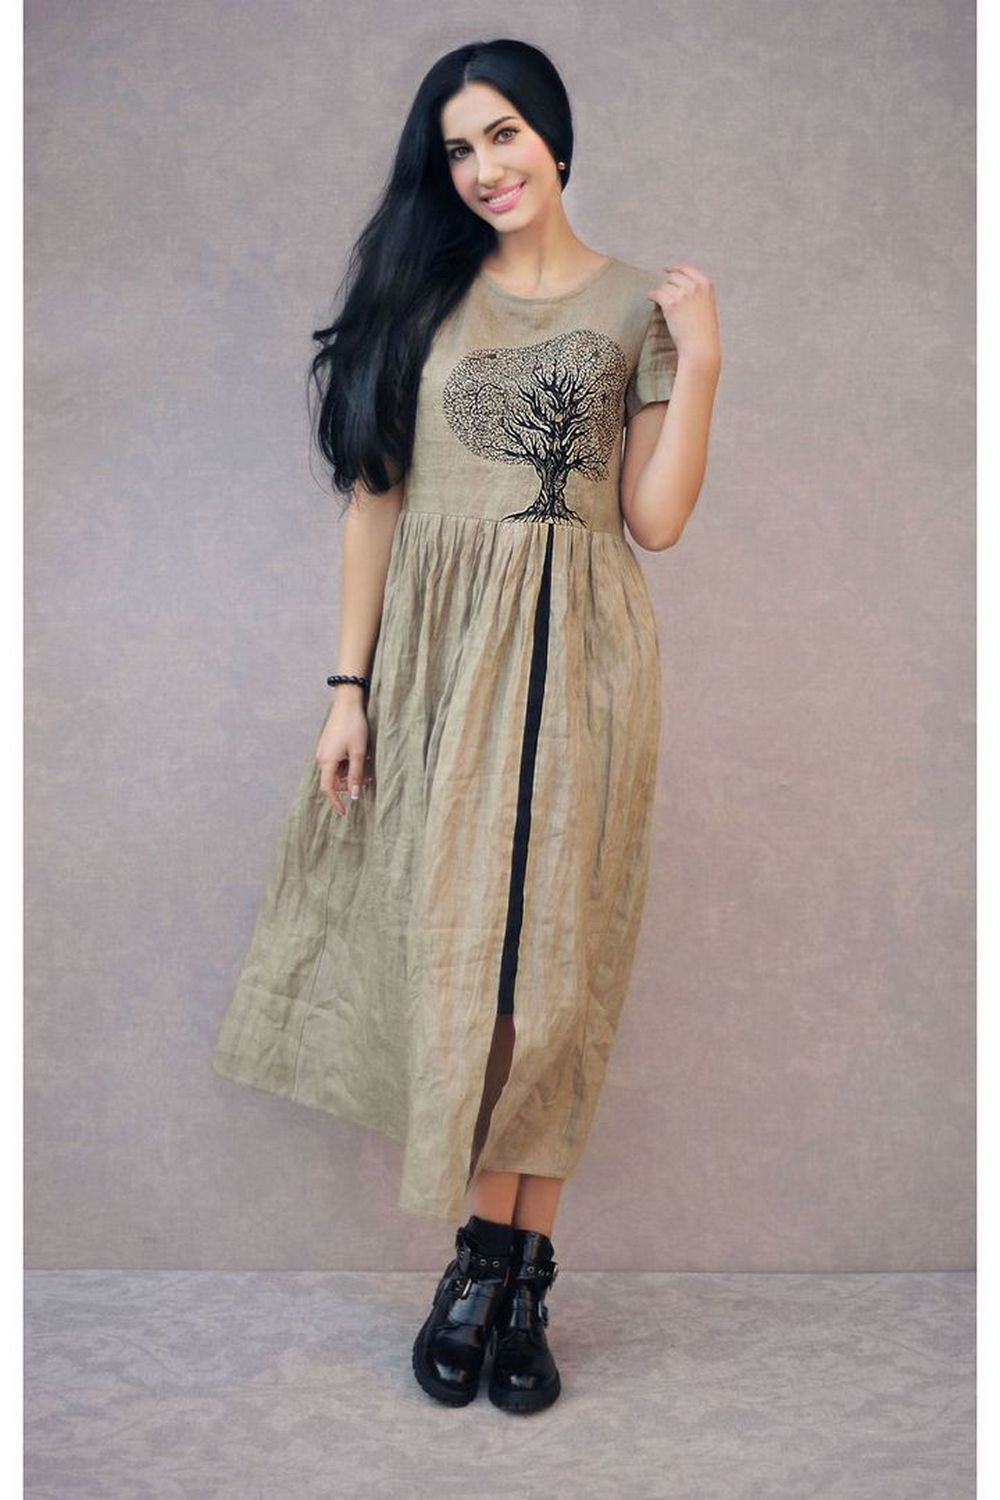 Buy Elegant linen beige midi dress with hand made embroidery, Original unique summer dress, Casual comfortable dress